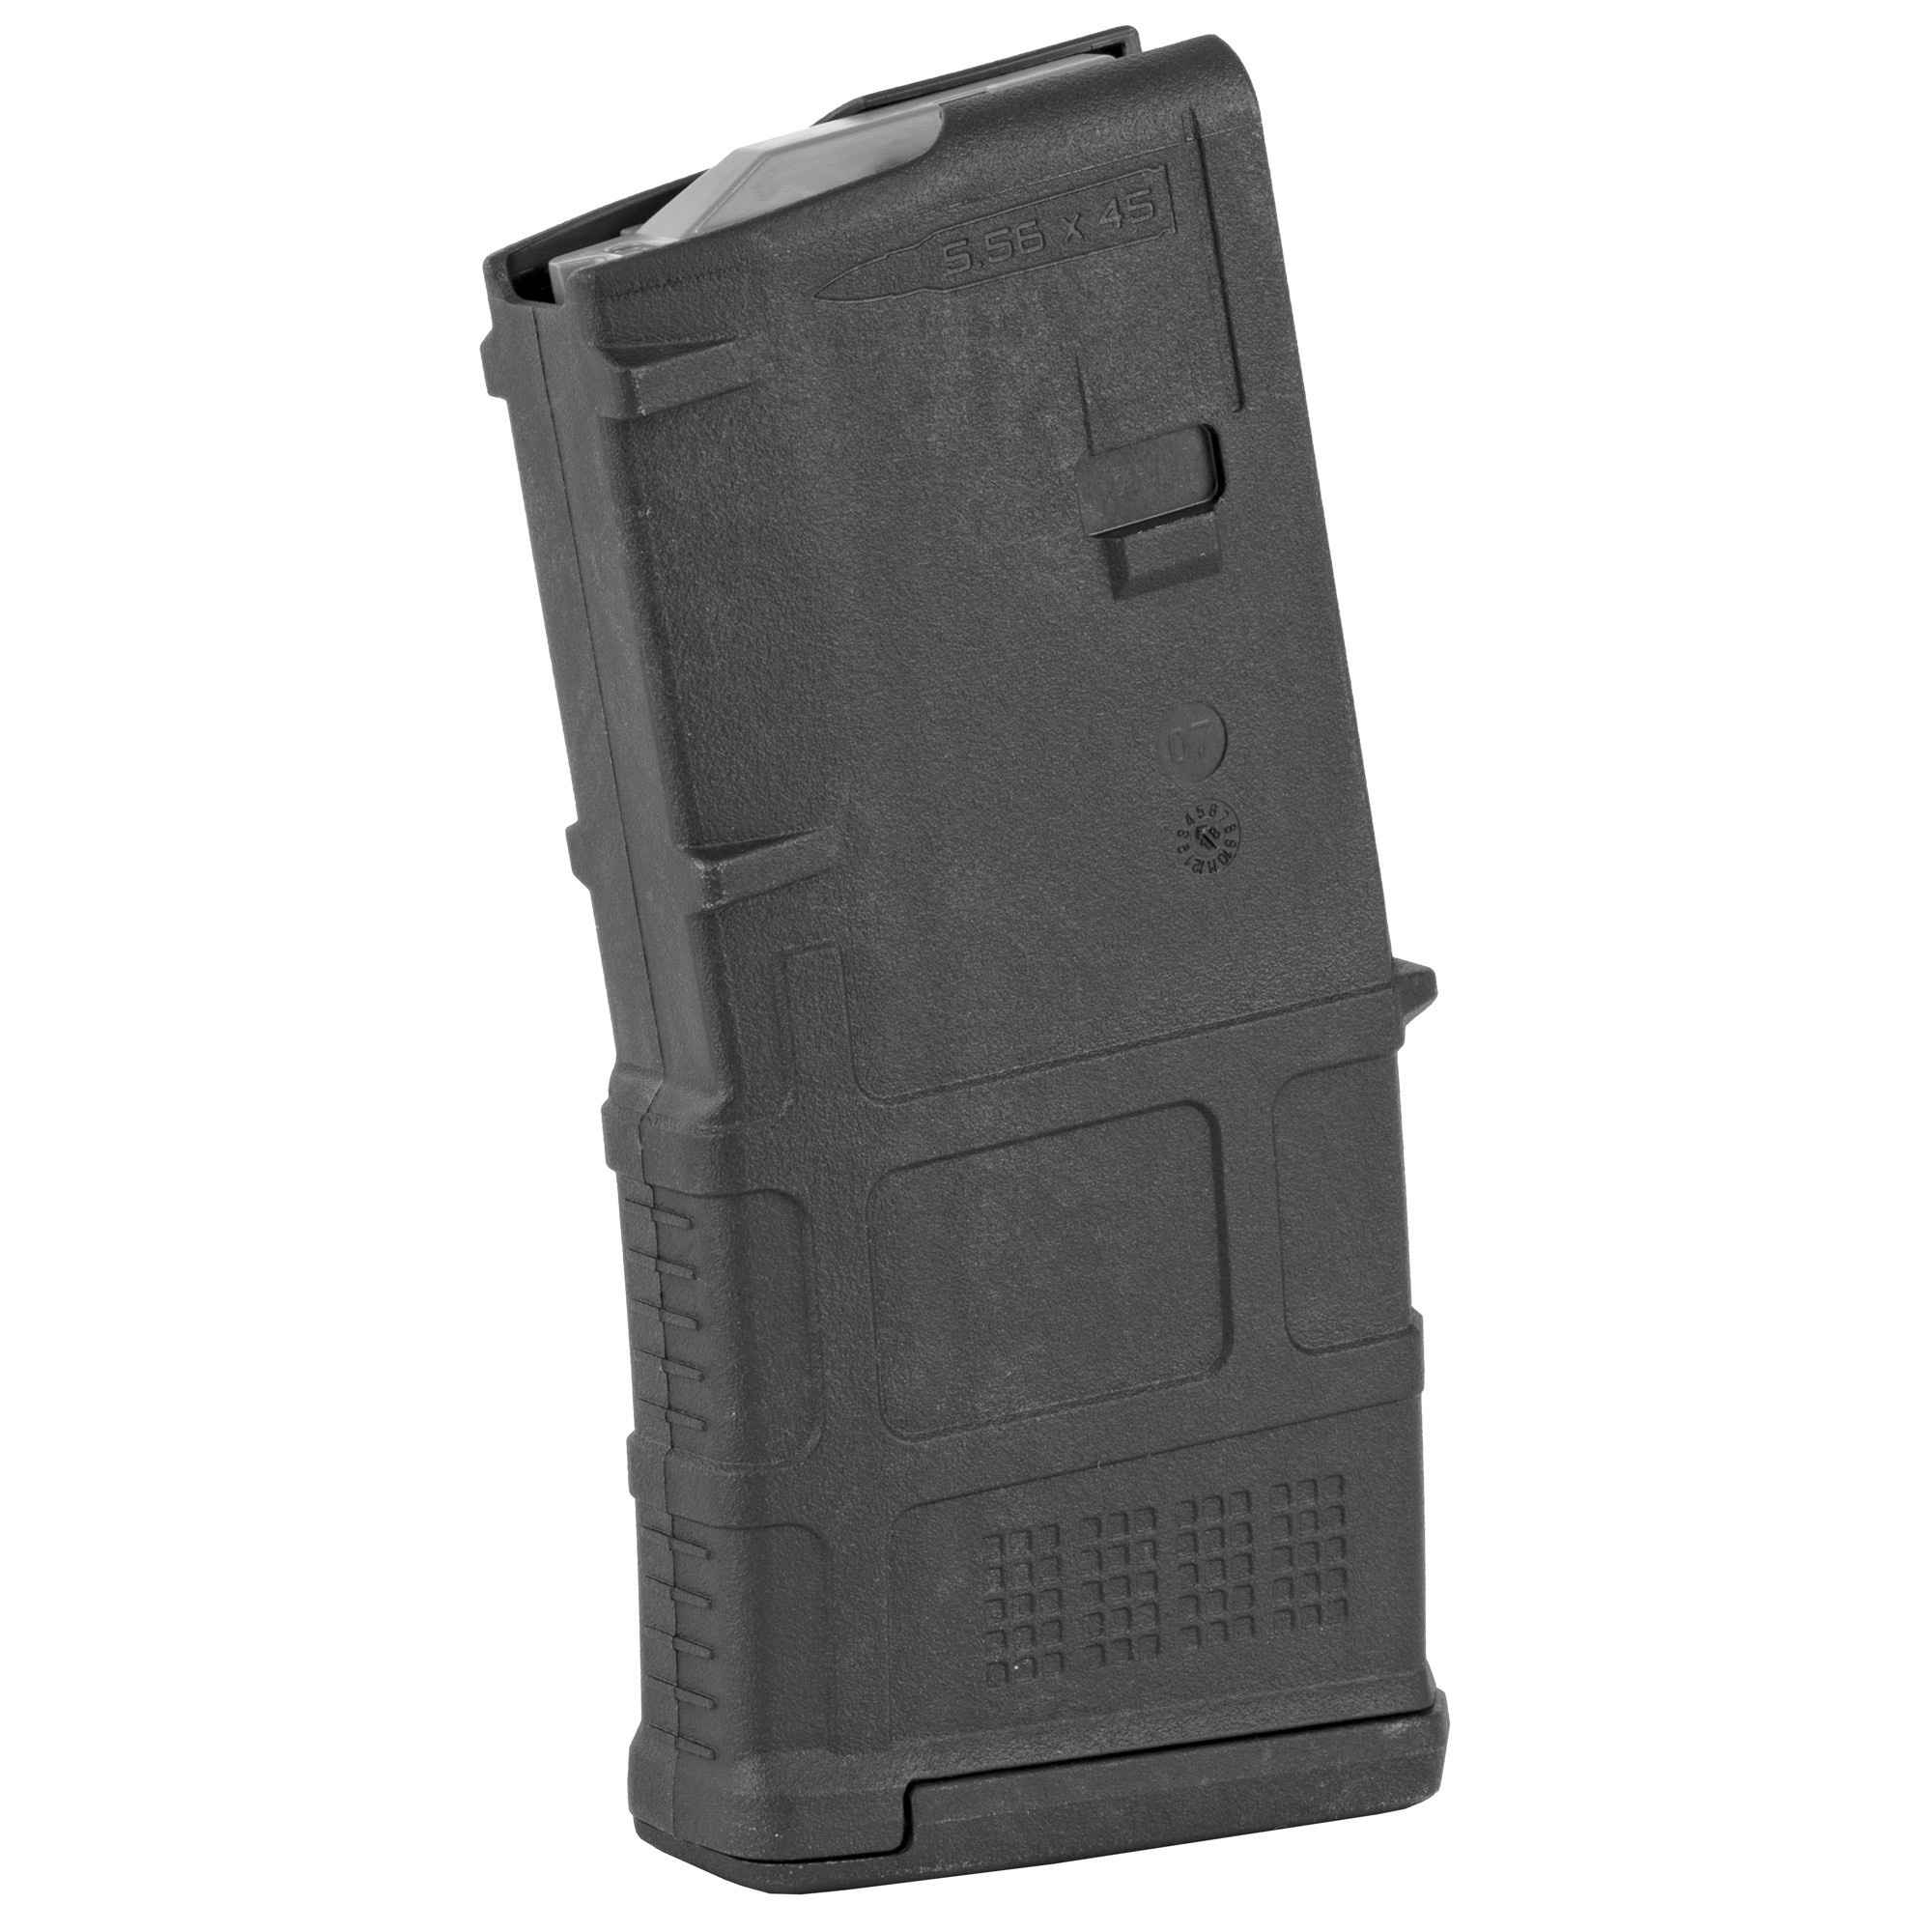 Magpul Gen M3 PMAG AR-15 Magazine .223/5.56 NATO 20 Rounds Polymer Black MAG560-BLK